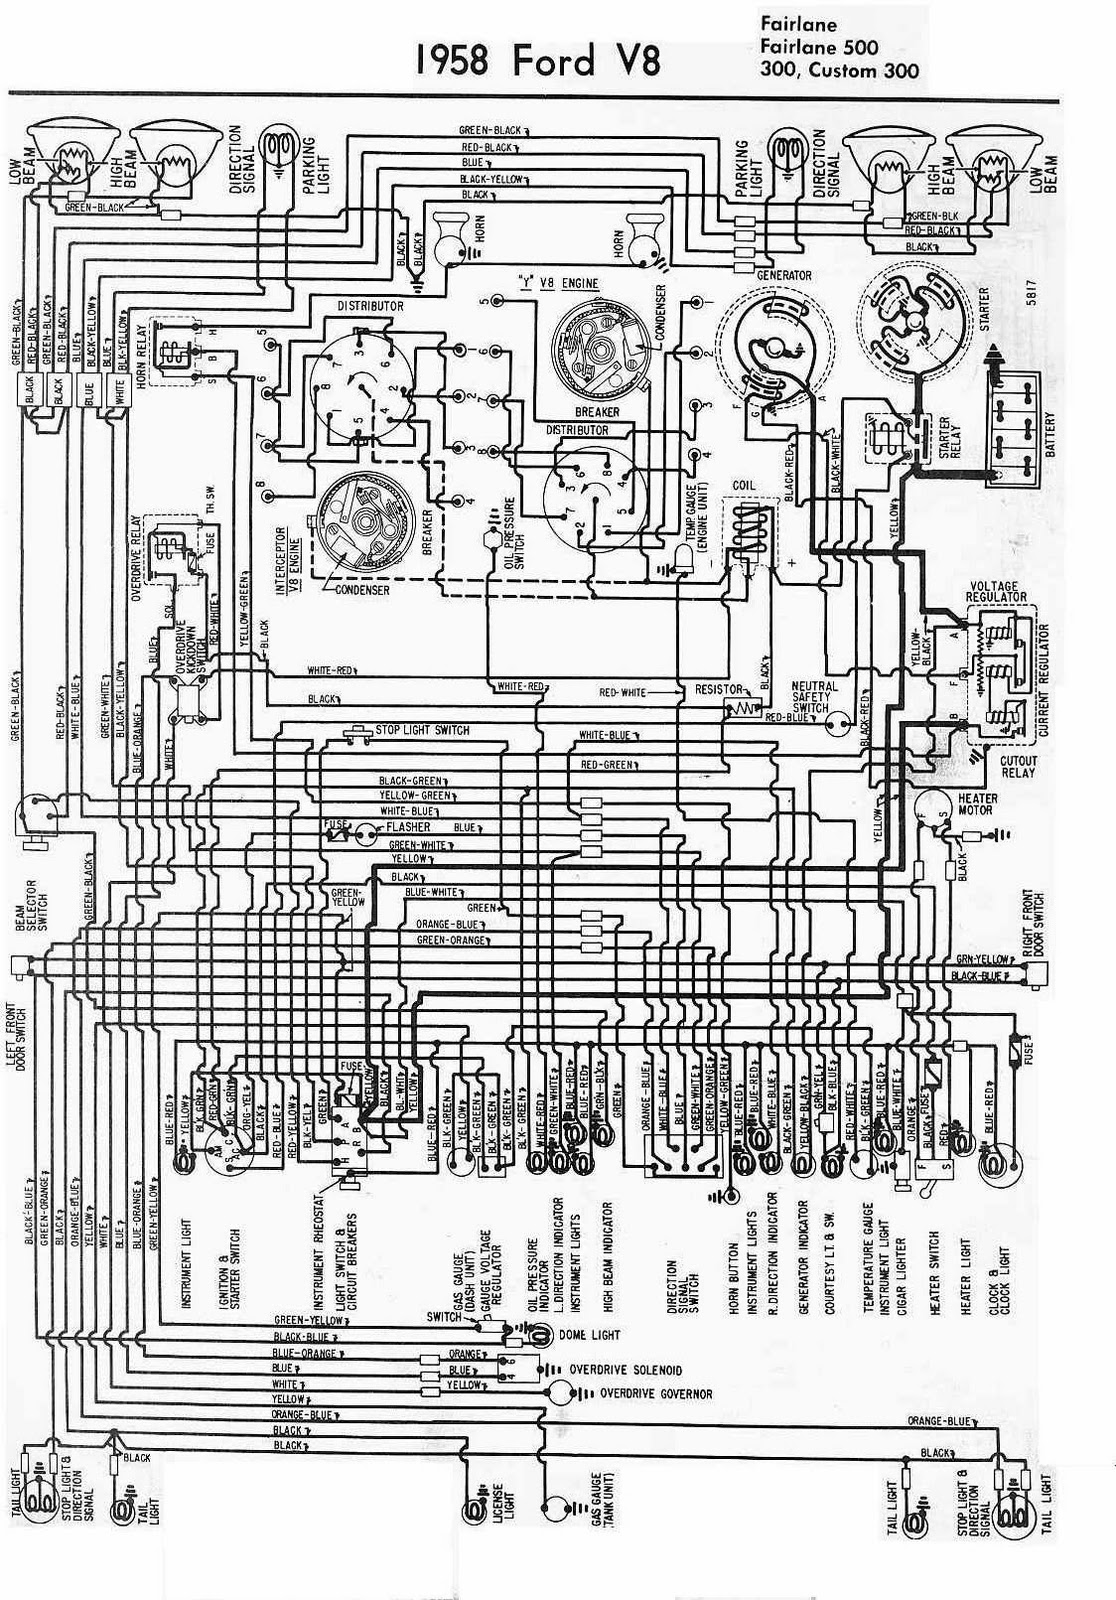 Electrical Wiring Diagram For 1958 Ford V8 | All about Wiring Diagrams